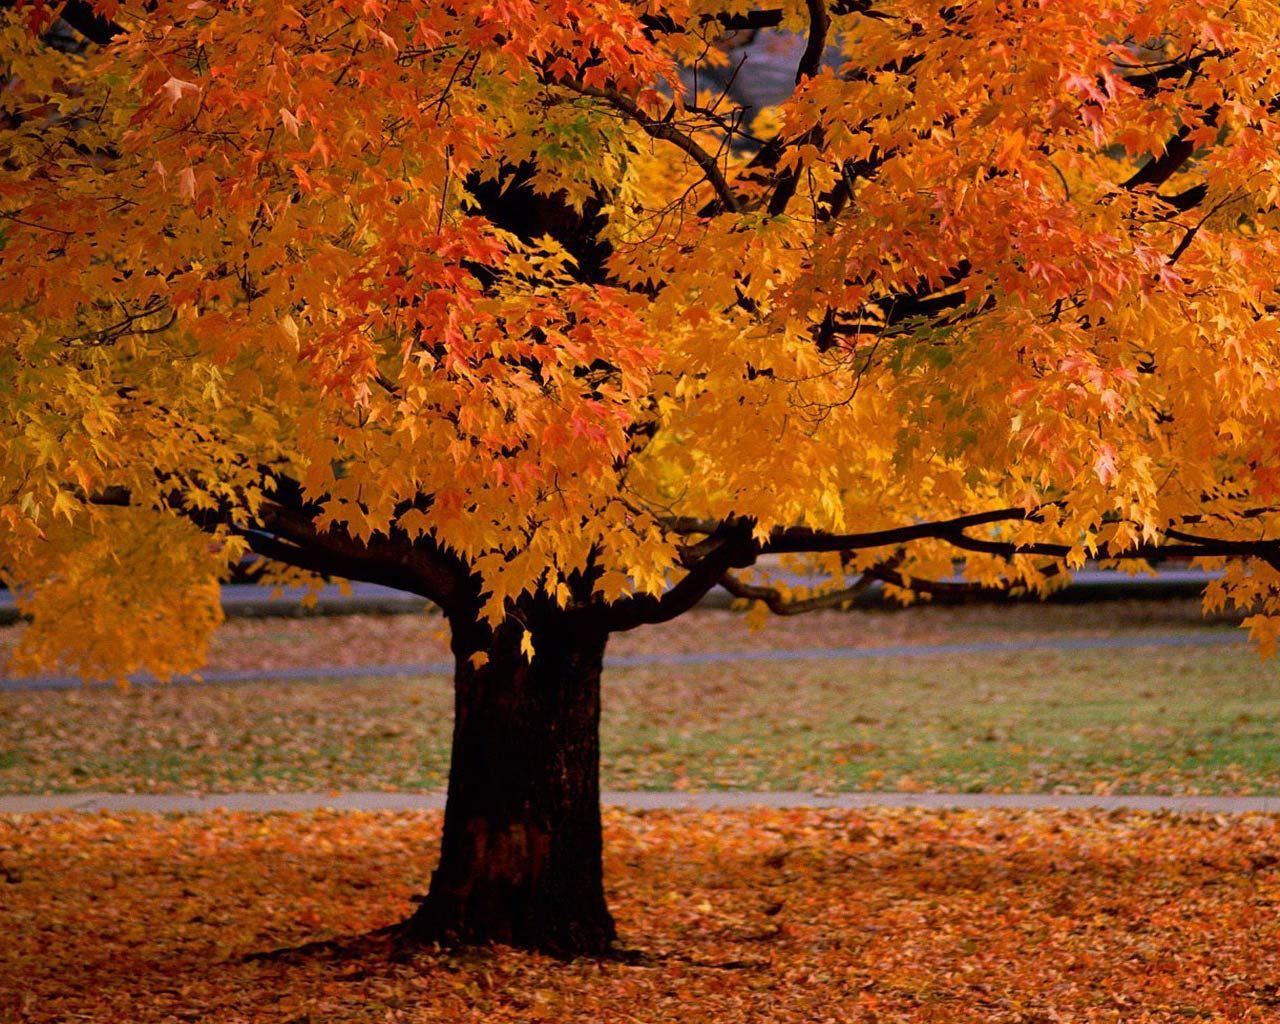 I wish I could live in a world where all the tress are this color